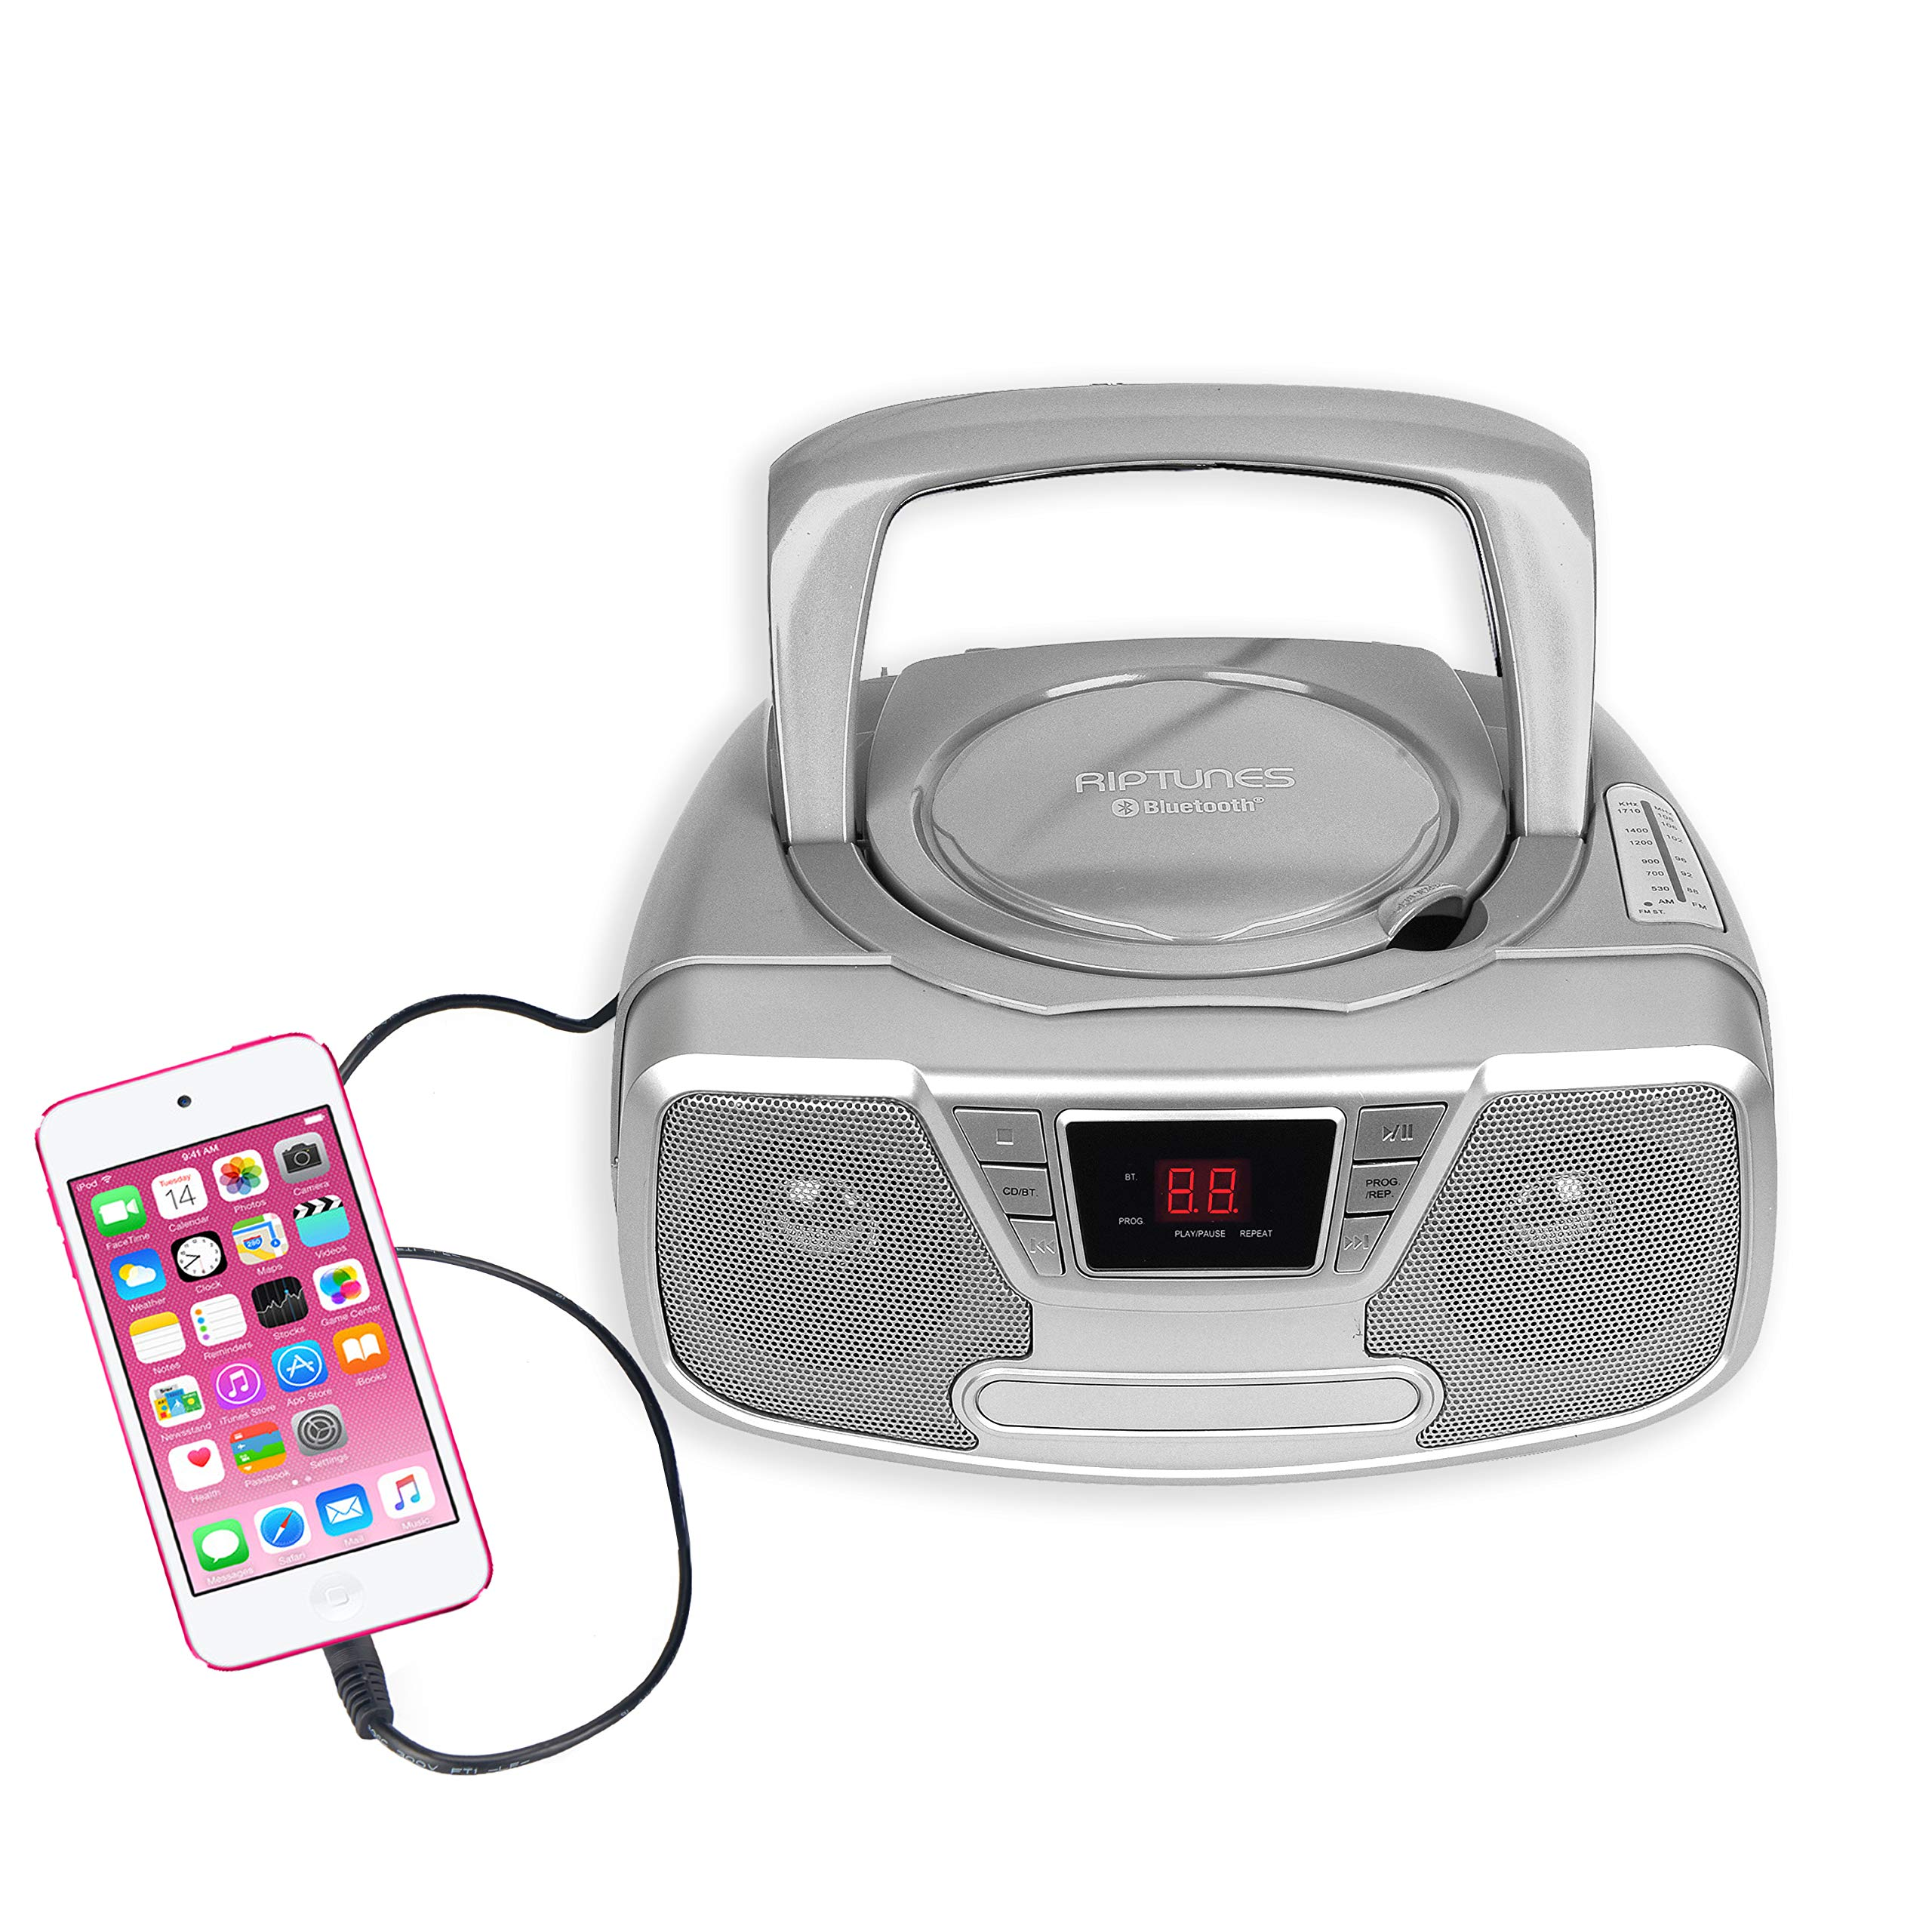 Riptunes Programmable CD Boombox- Portable Boombox, AM/FM Radio, with Bluetooth Silver CDB232BT